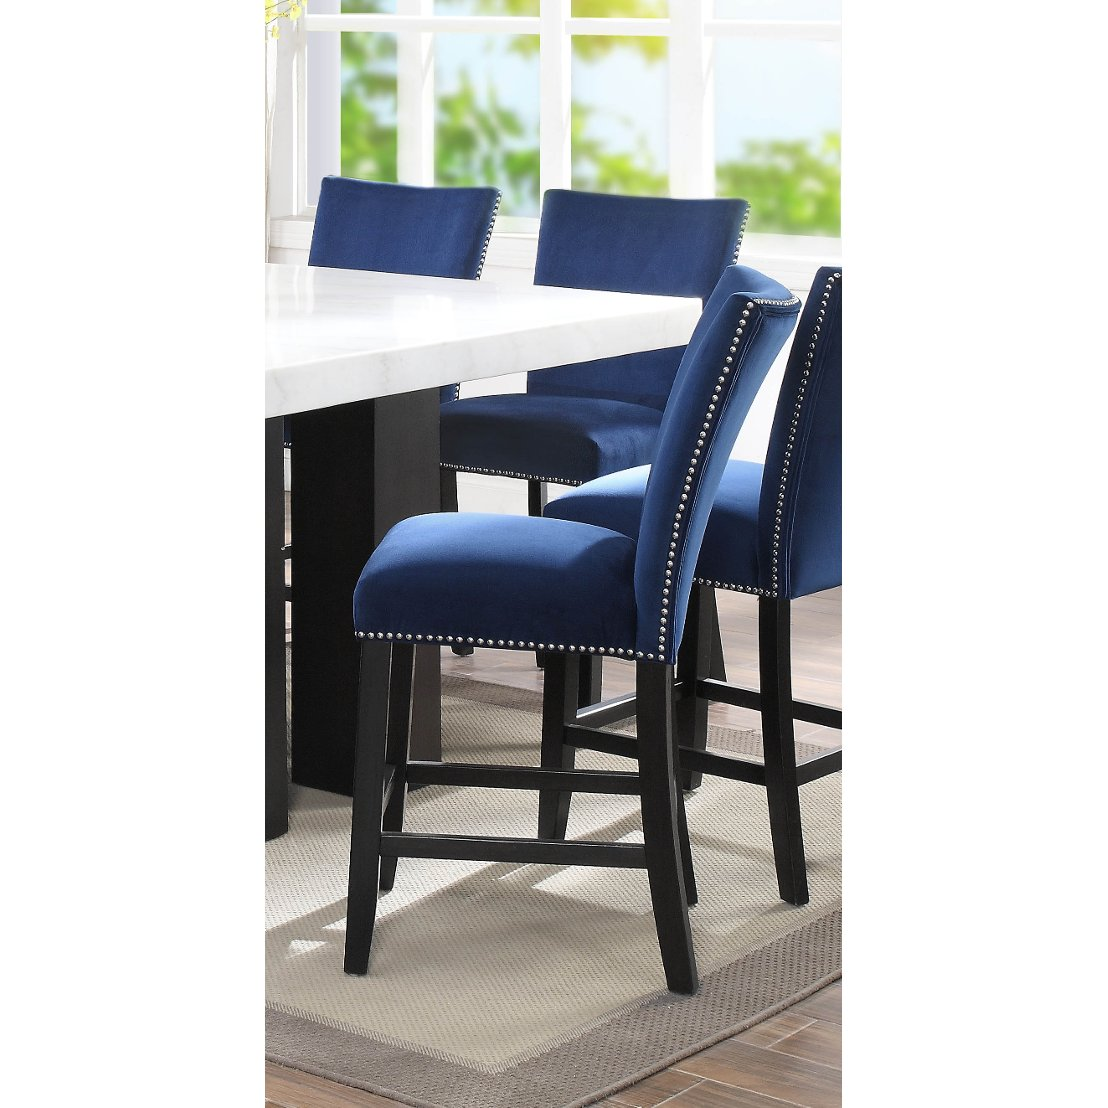 Counter Height Chairs With Arms Blue Velvet Upholstered Counter Height Stool Camila